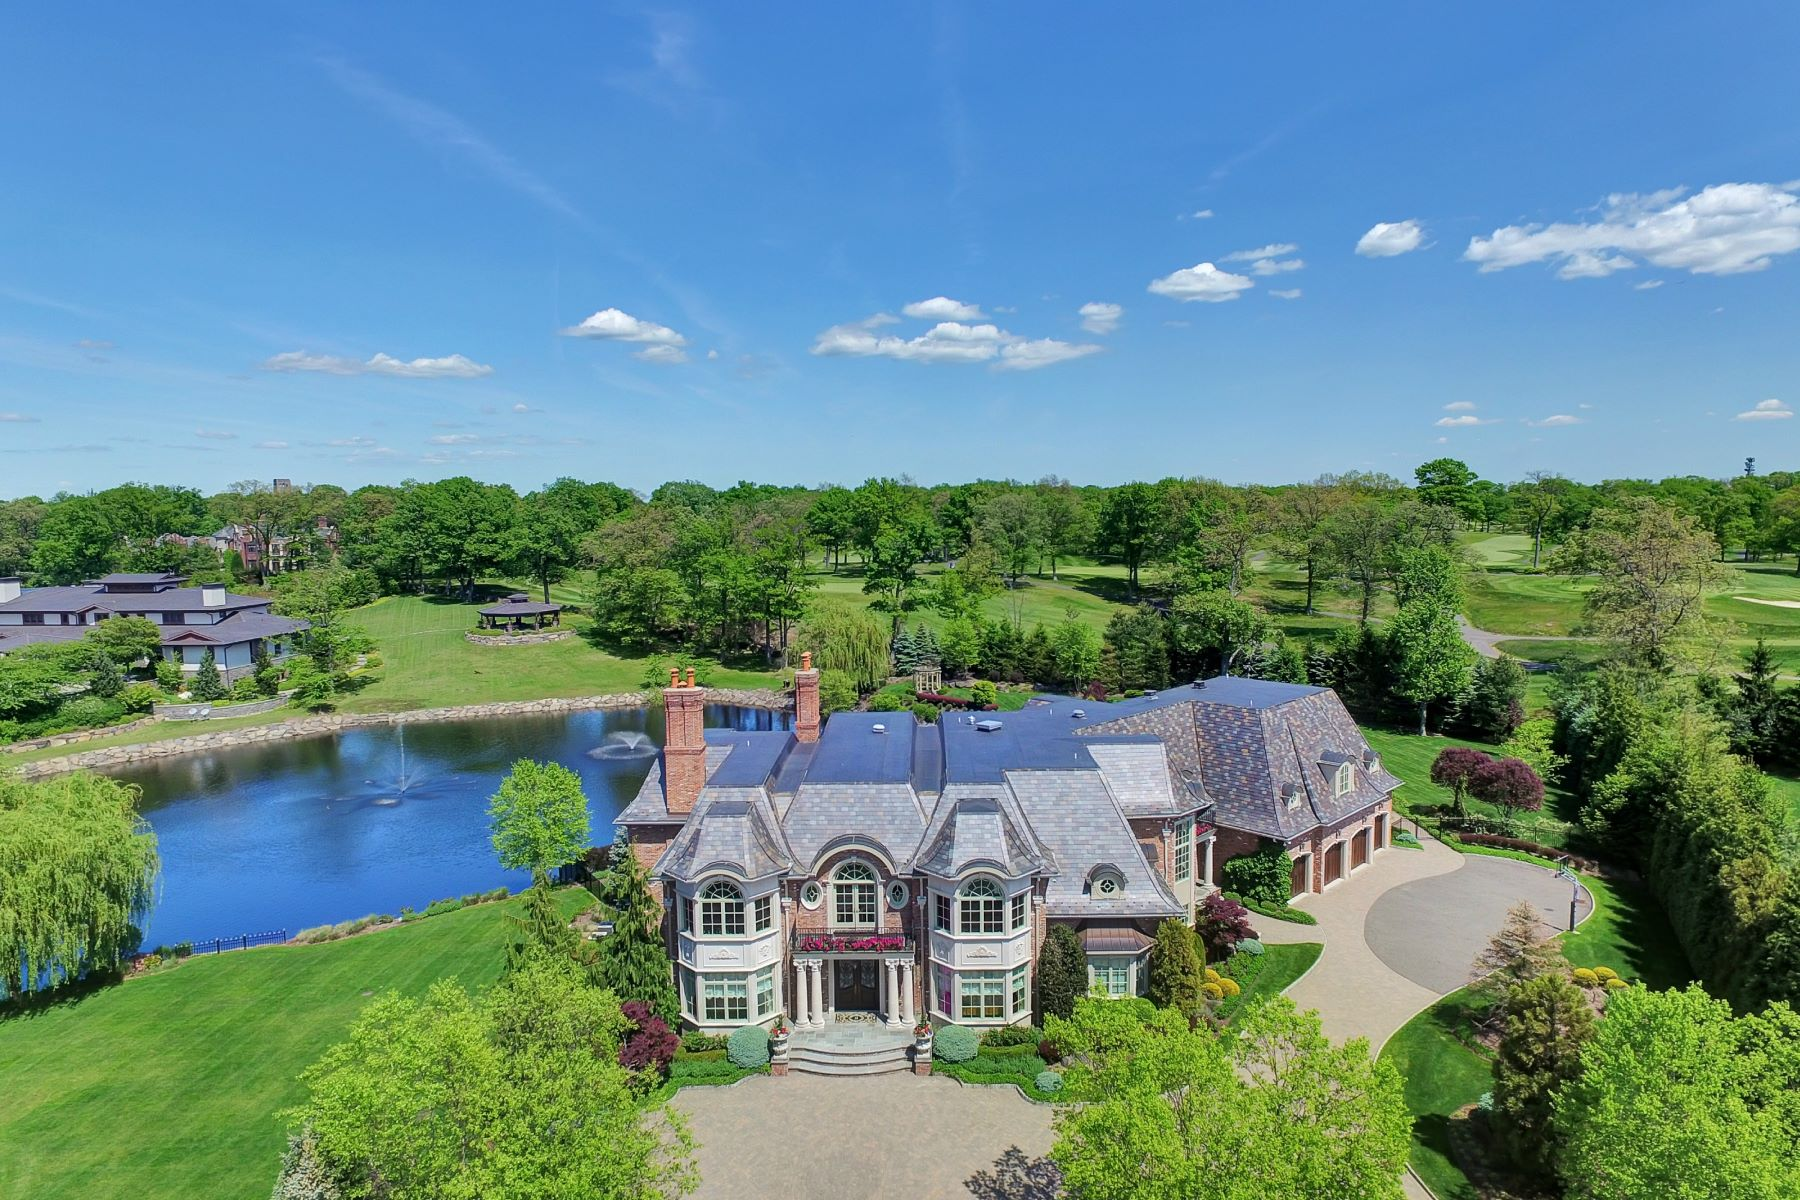 Single Family Home for Sale at Pure Luxury in Alpine 220 Vaccaro Drive Alpine, New Jersey 07620 United States